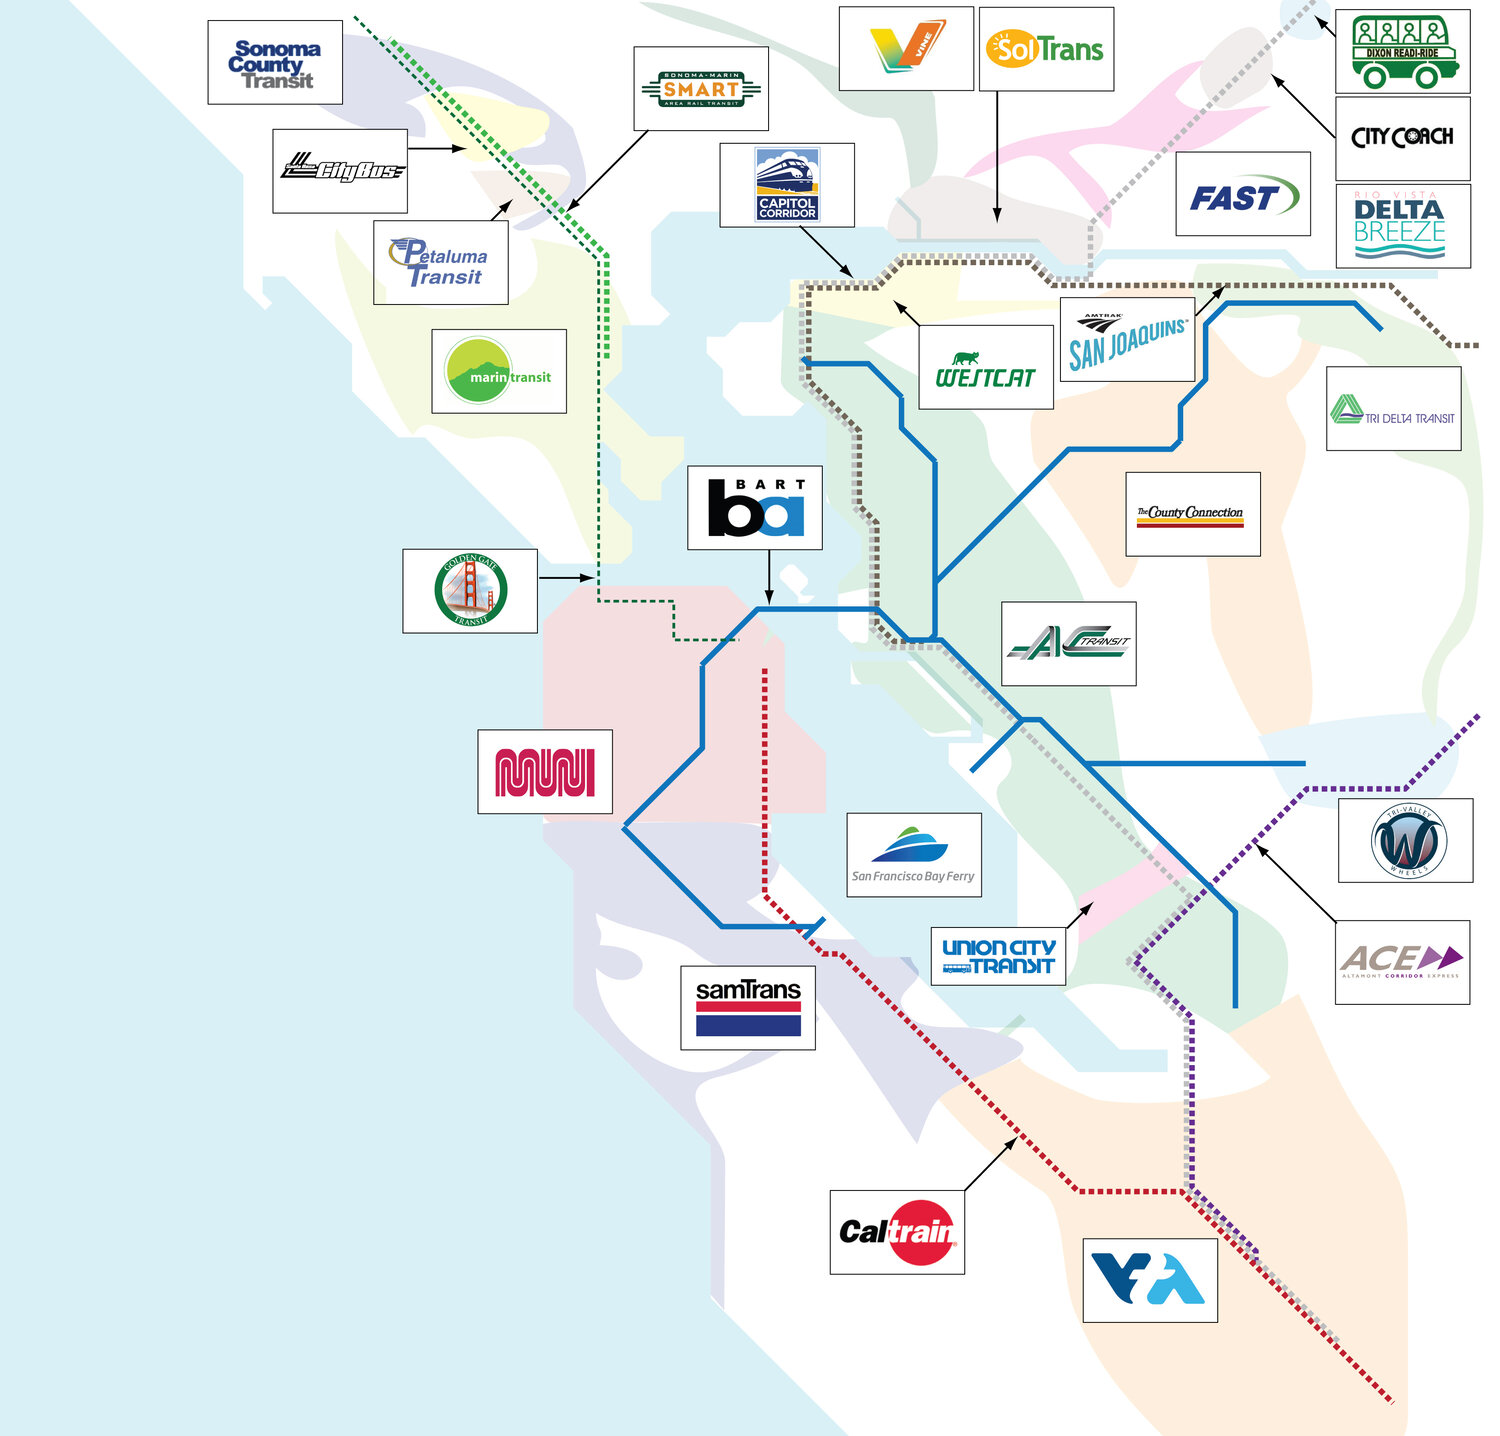 The Definitive List Of Bay Area Transit Agencies Seamless Bay Area Select a point on the map to view speeds, incidents, and cameras. seamless bay area